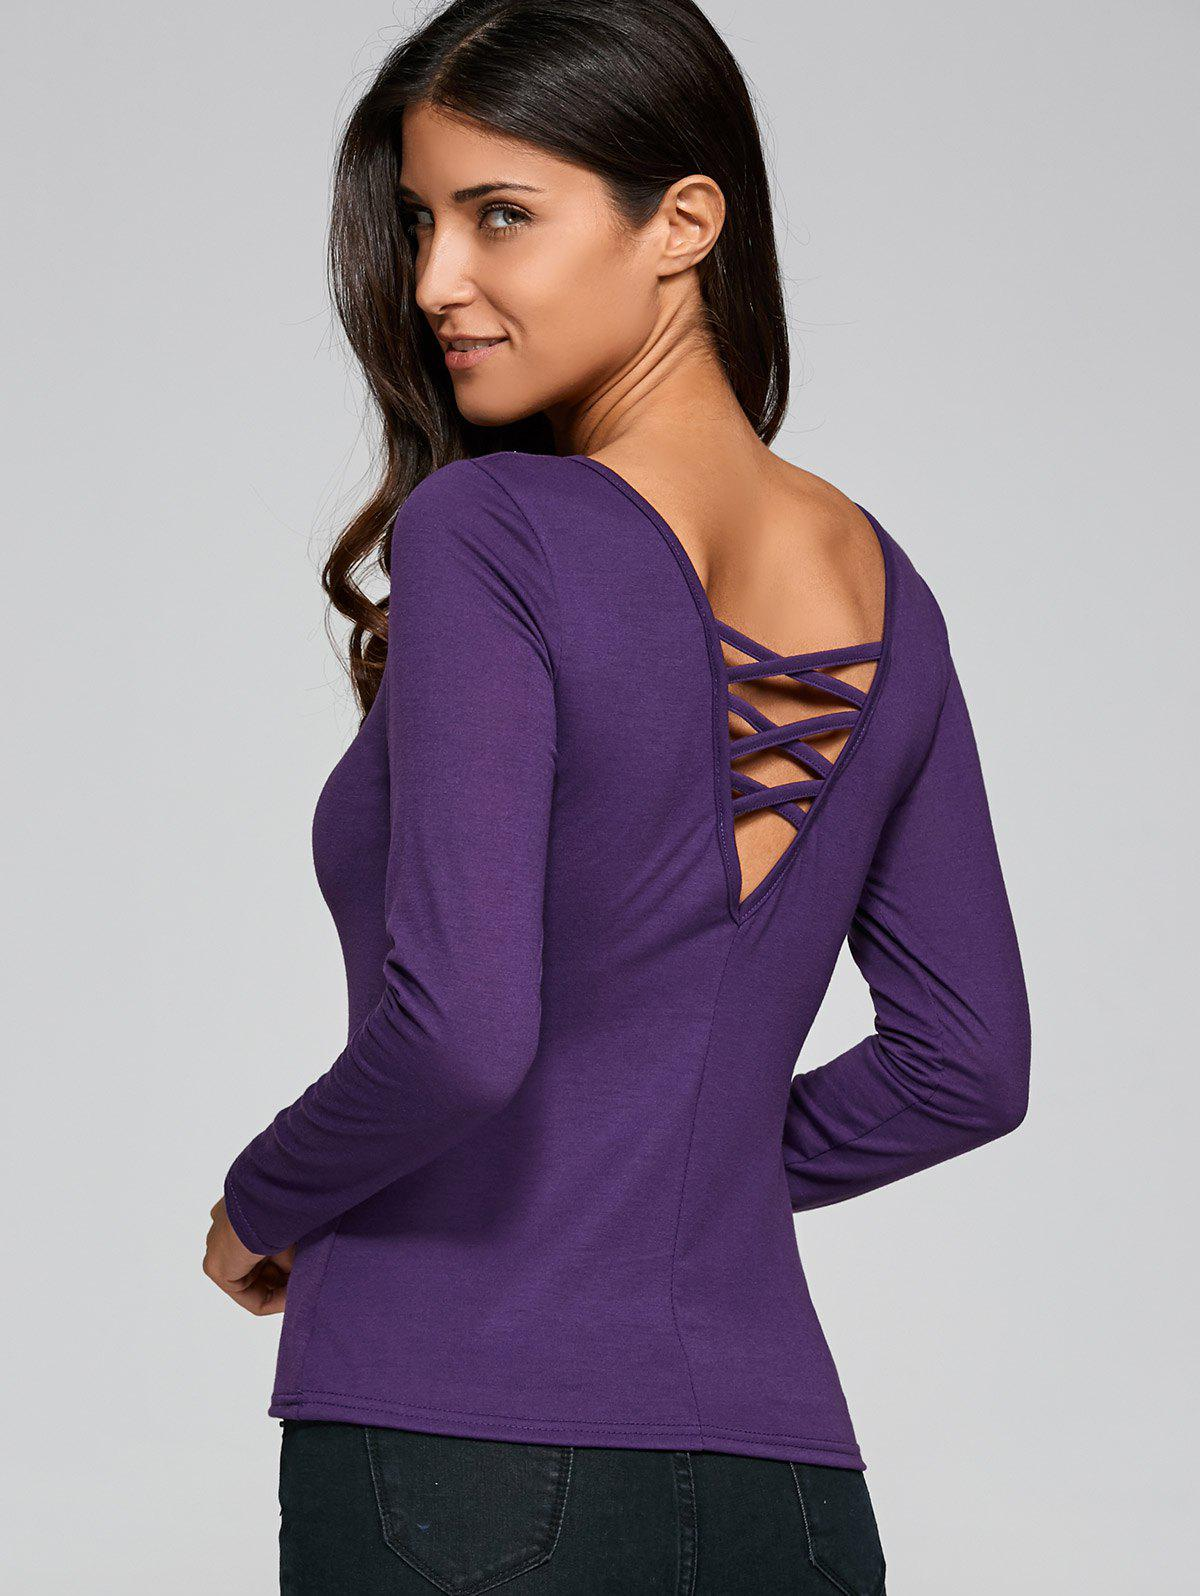 Long Sleeve Cut Out Fitting T-Shirt - PURPLE M